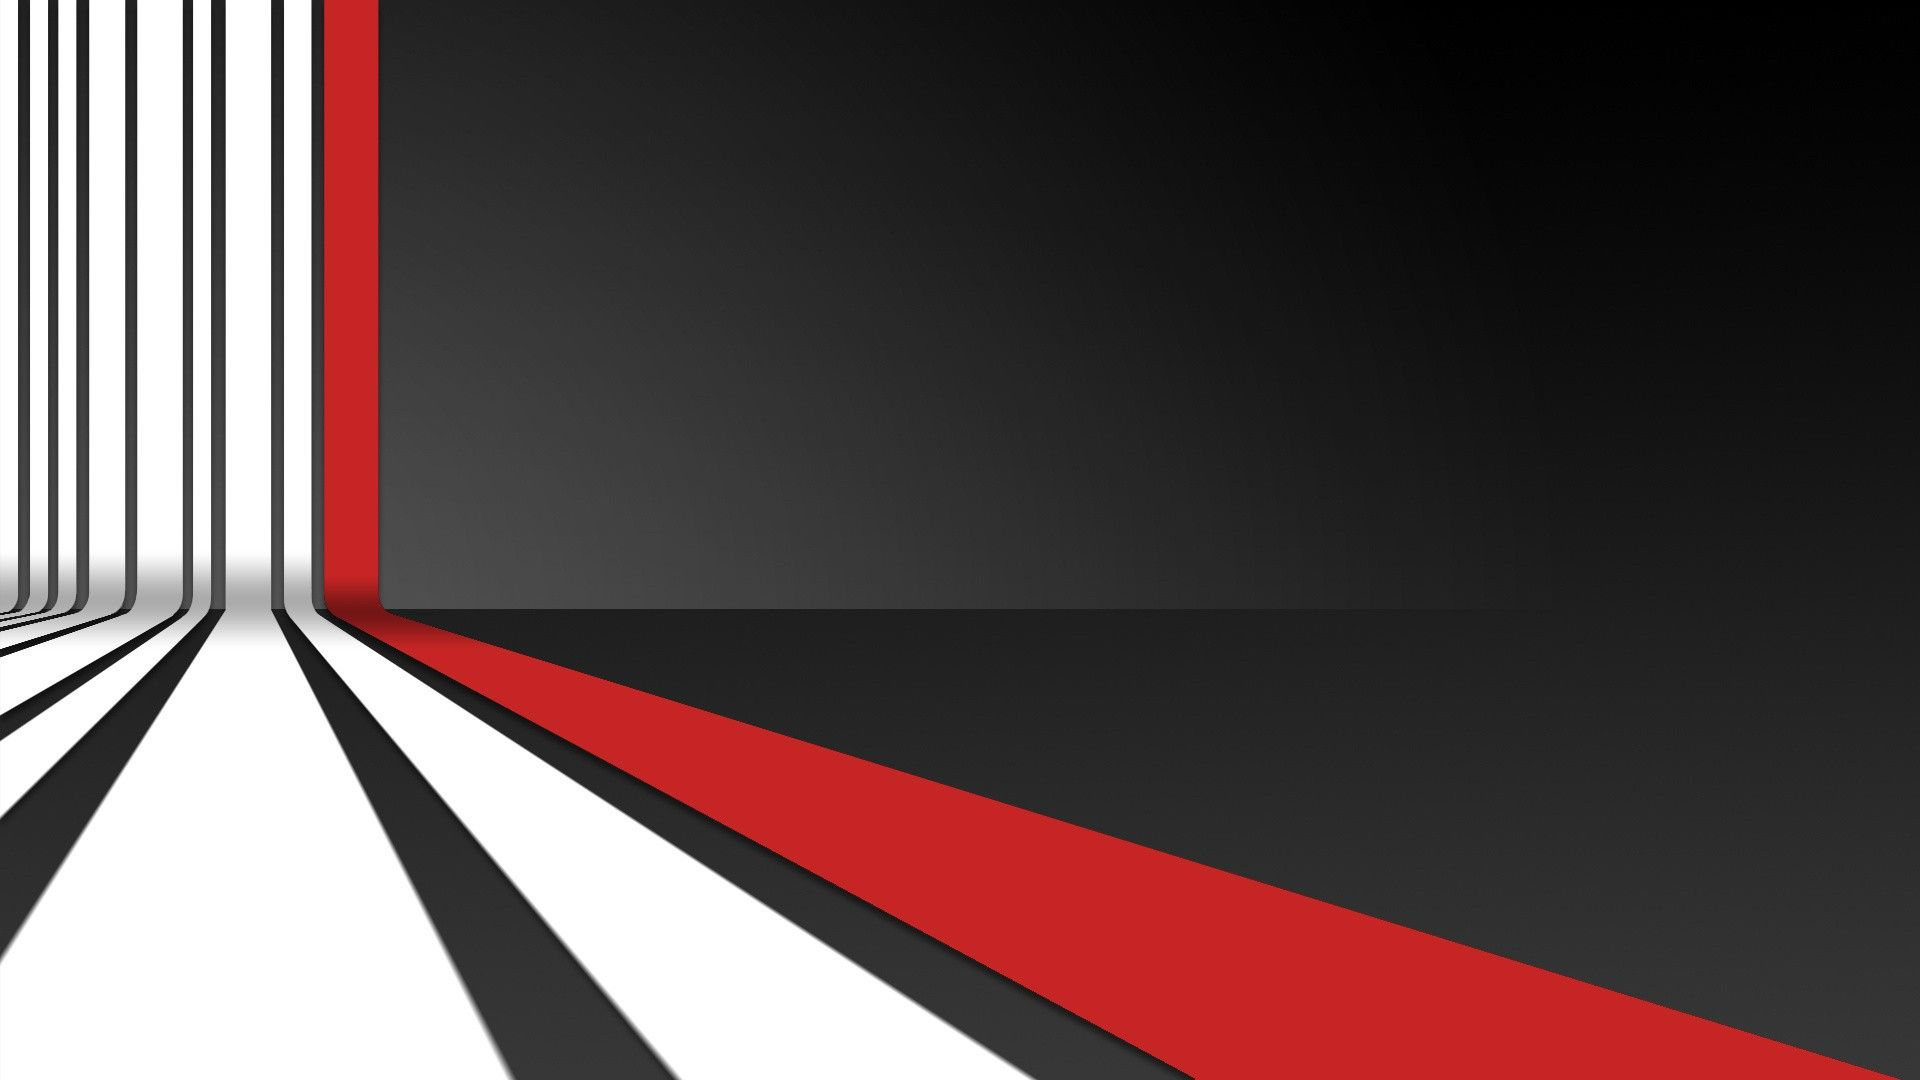 Wallpapers For Red White Black Abstract Background 1920x1080